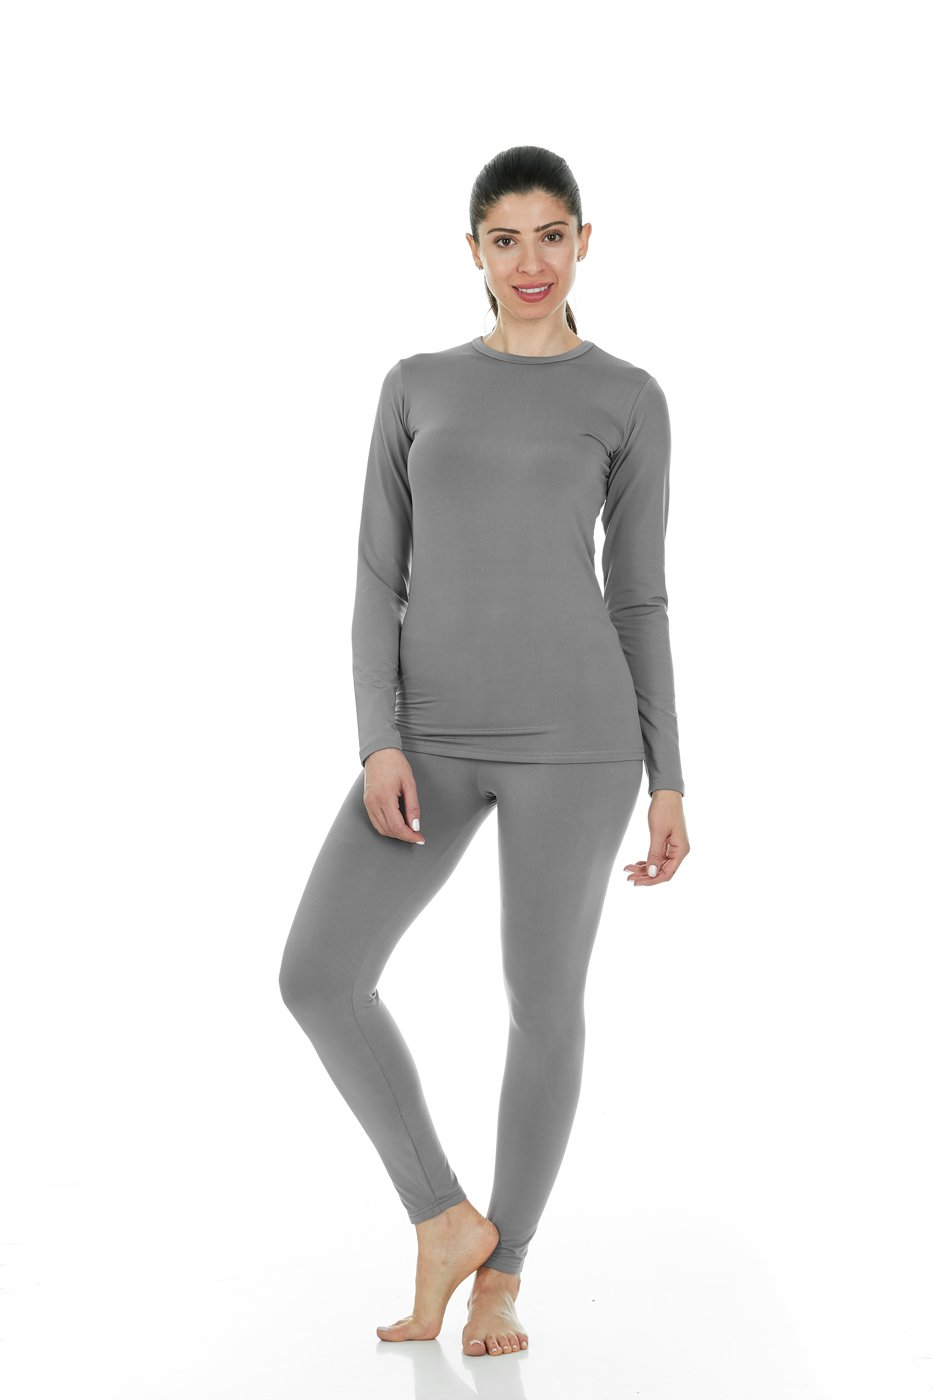 Thermajane Women's Ultra Soft Thermal Underwear Long Johns Set with Fleece Lined (XX-Small, Grey)